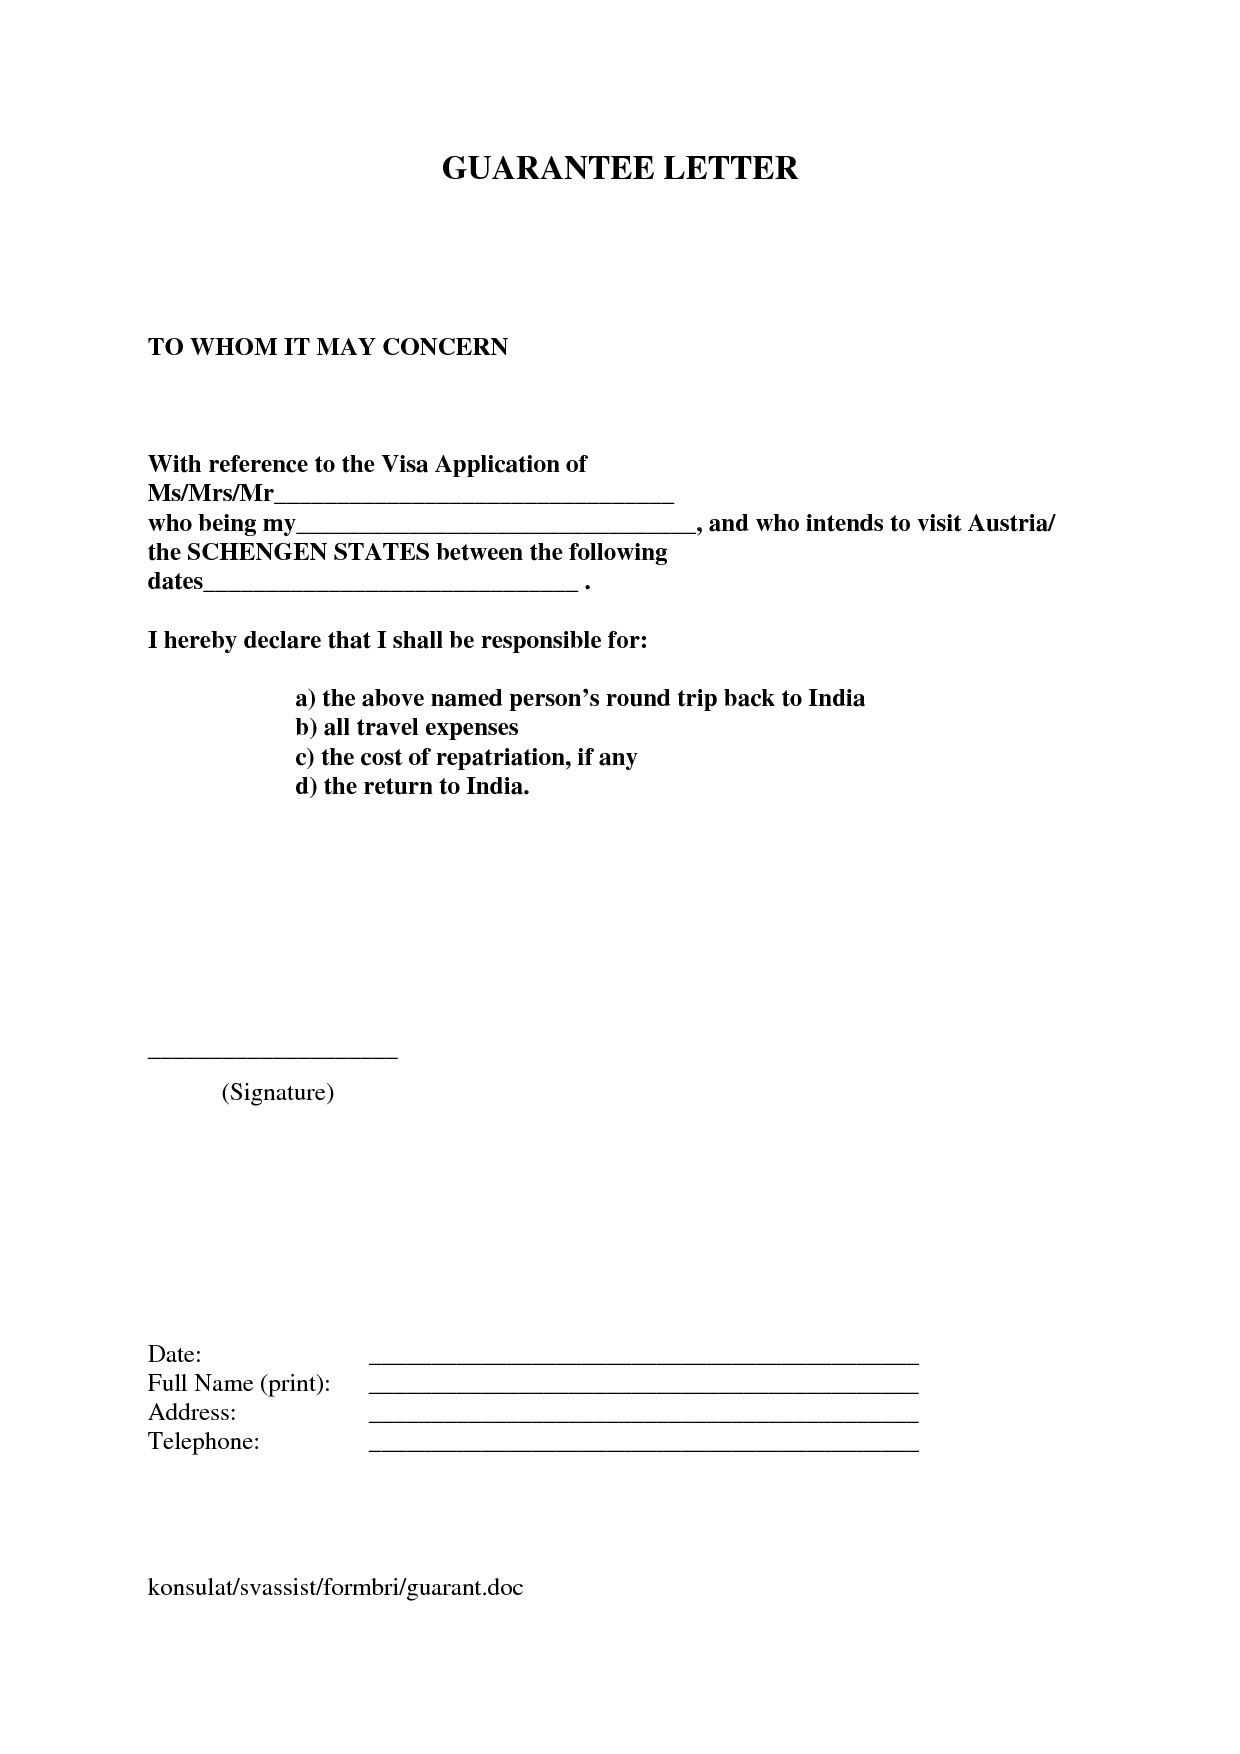 How To Accept Sample Signature Guarantee Letter Templates With